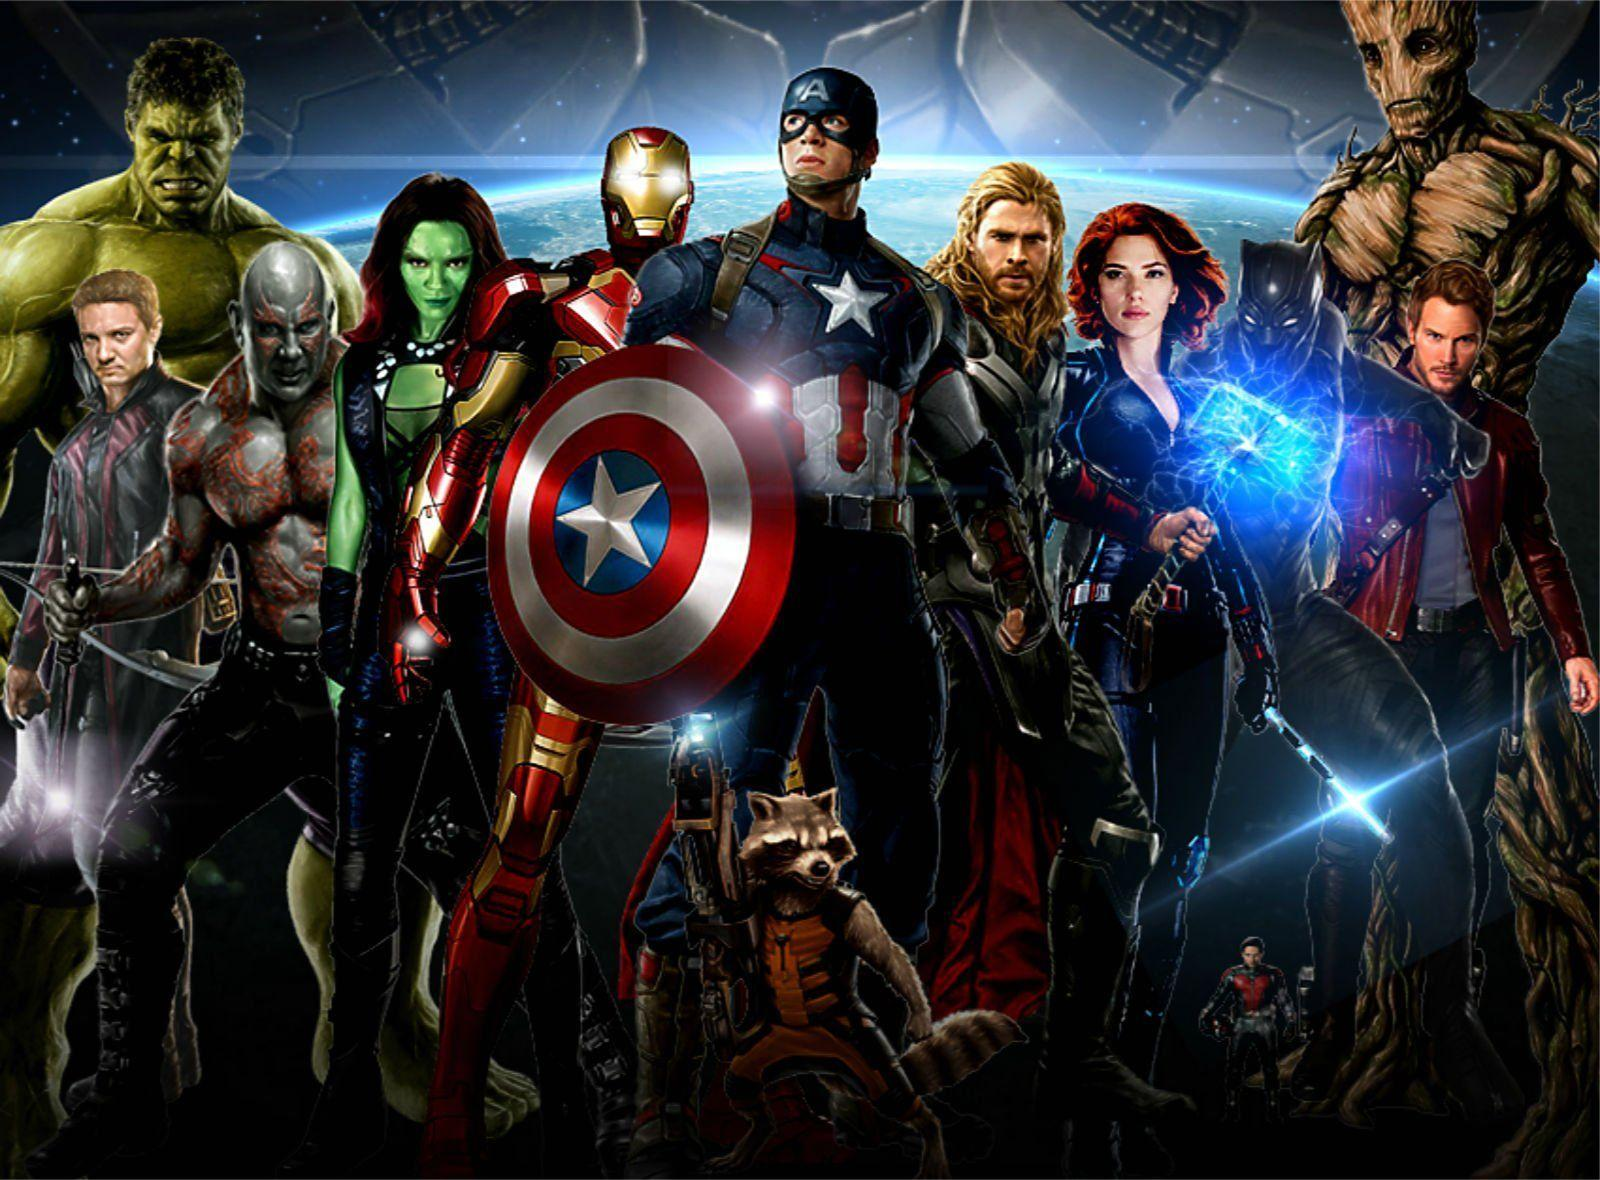 Unduh 5000+ Wallpaper Avengers Full Hd HD Terbaru